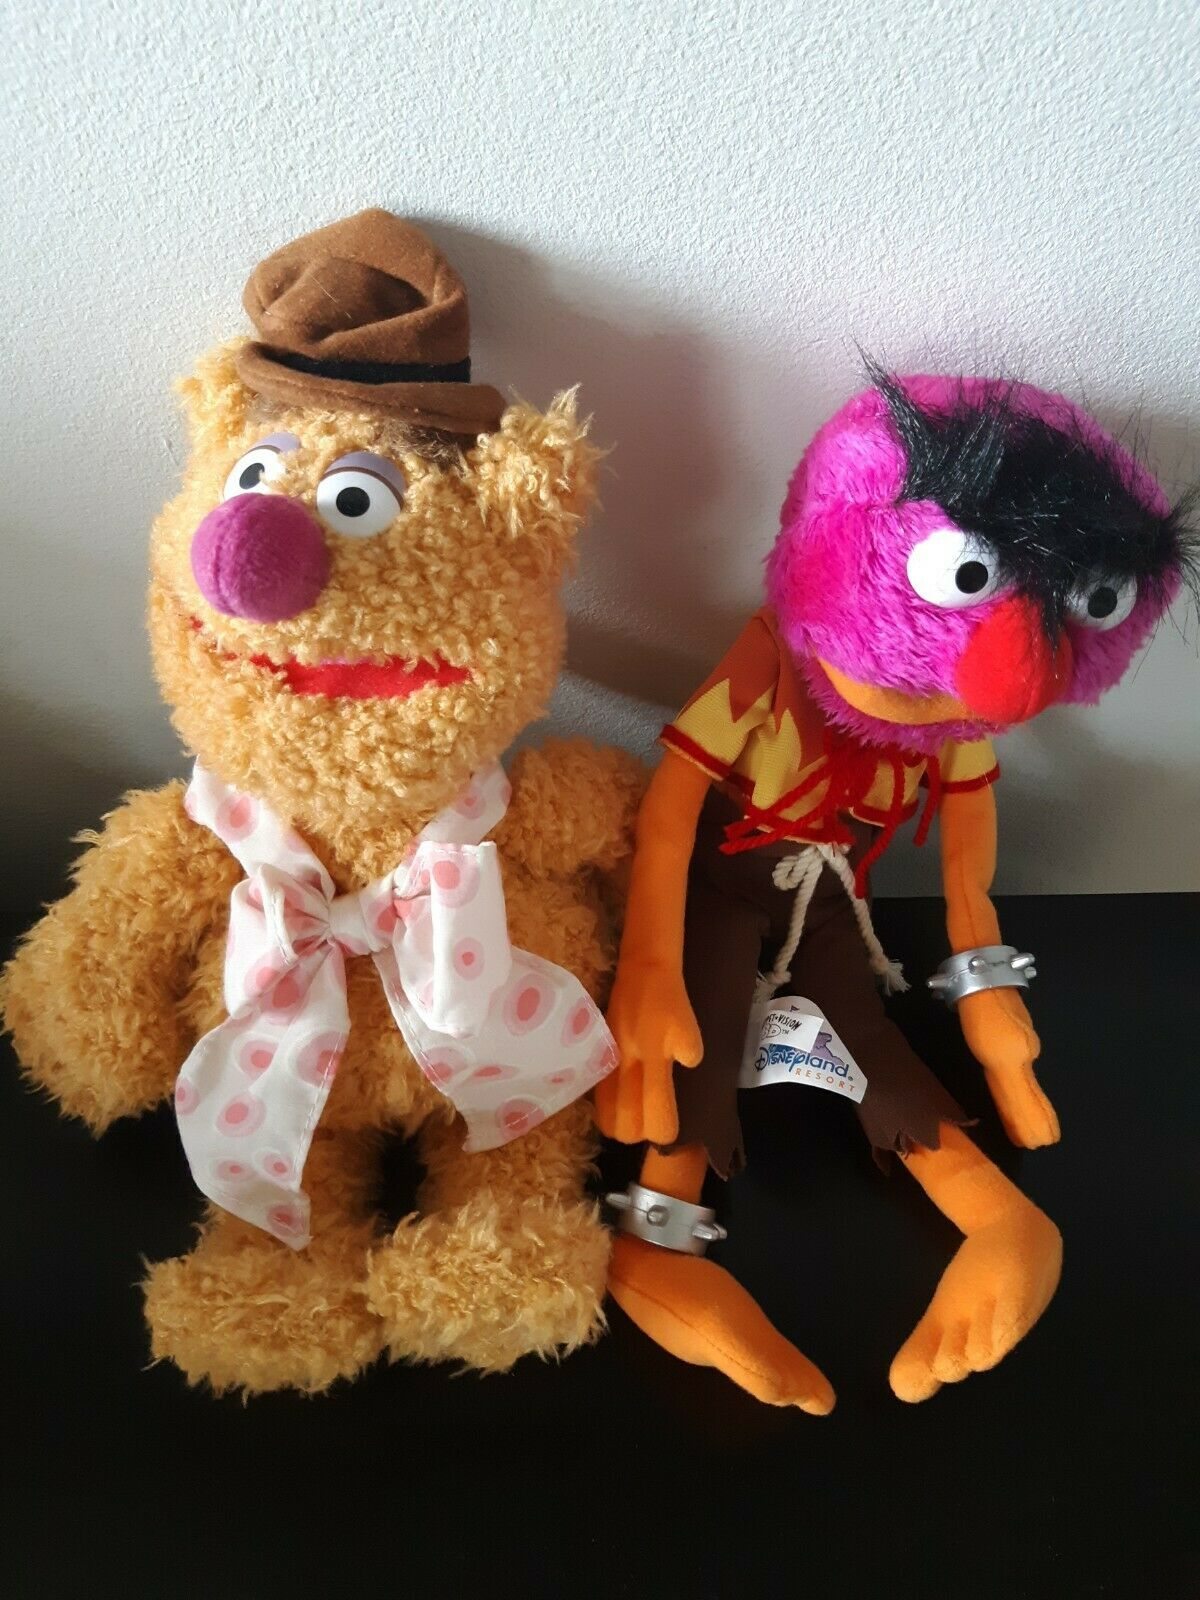 Set of 2 Disney Parks Muppet Vision 3D Plush Animal Fozzie Bear Stuffed Animals